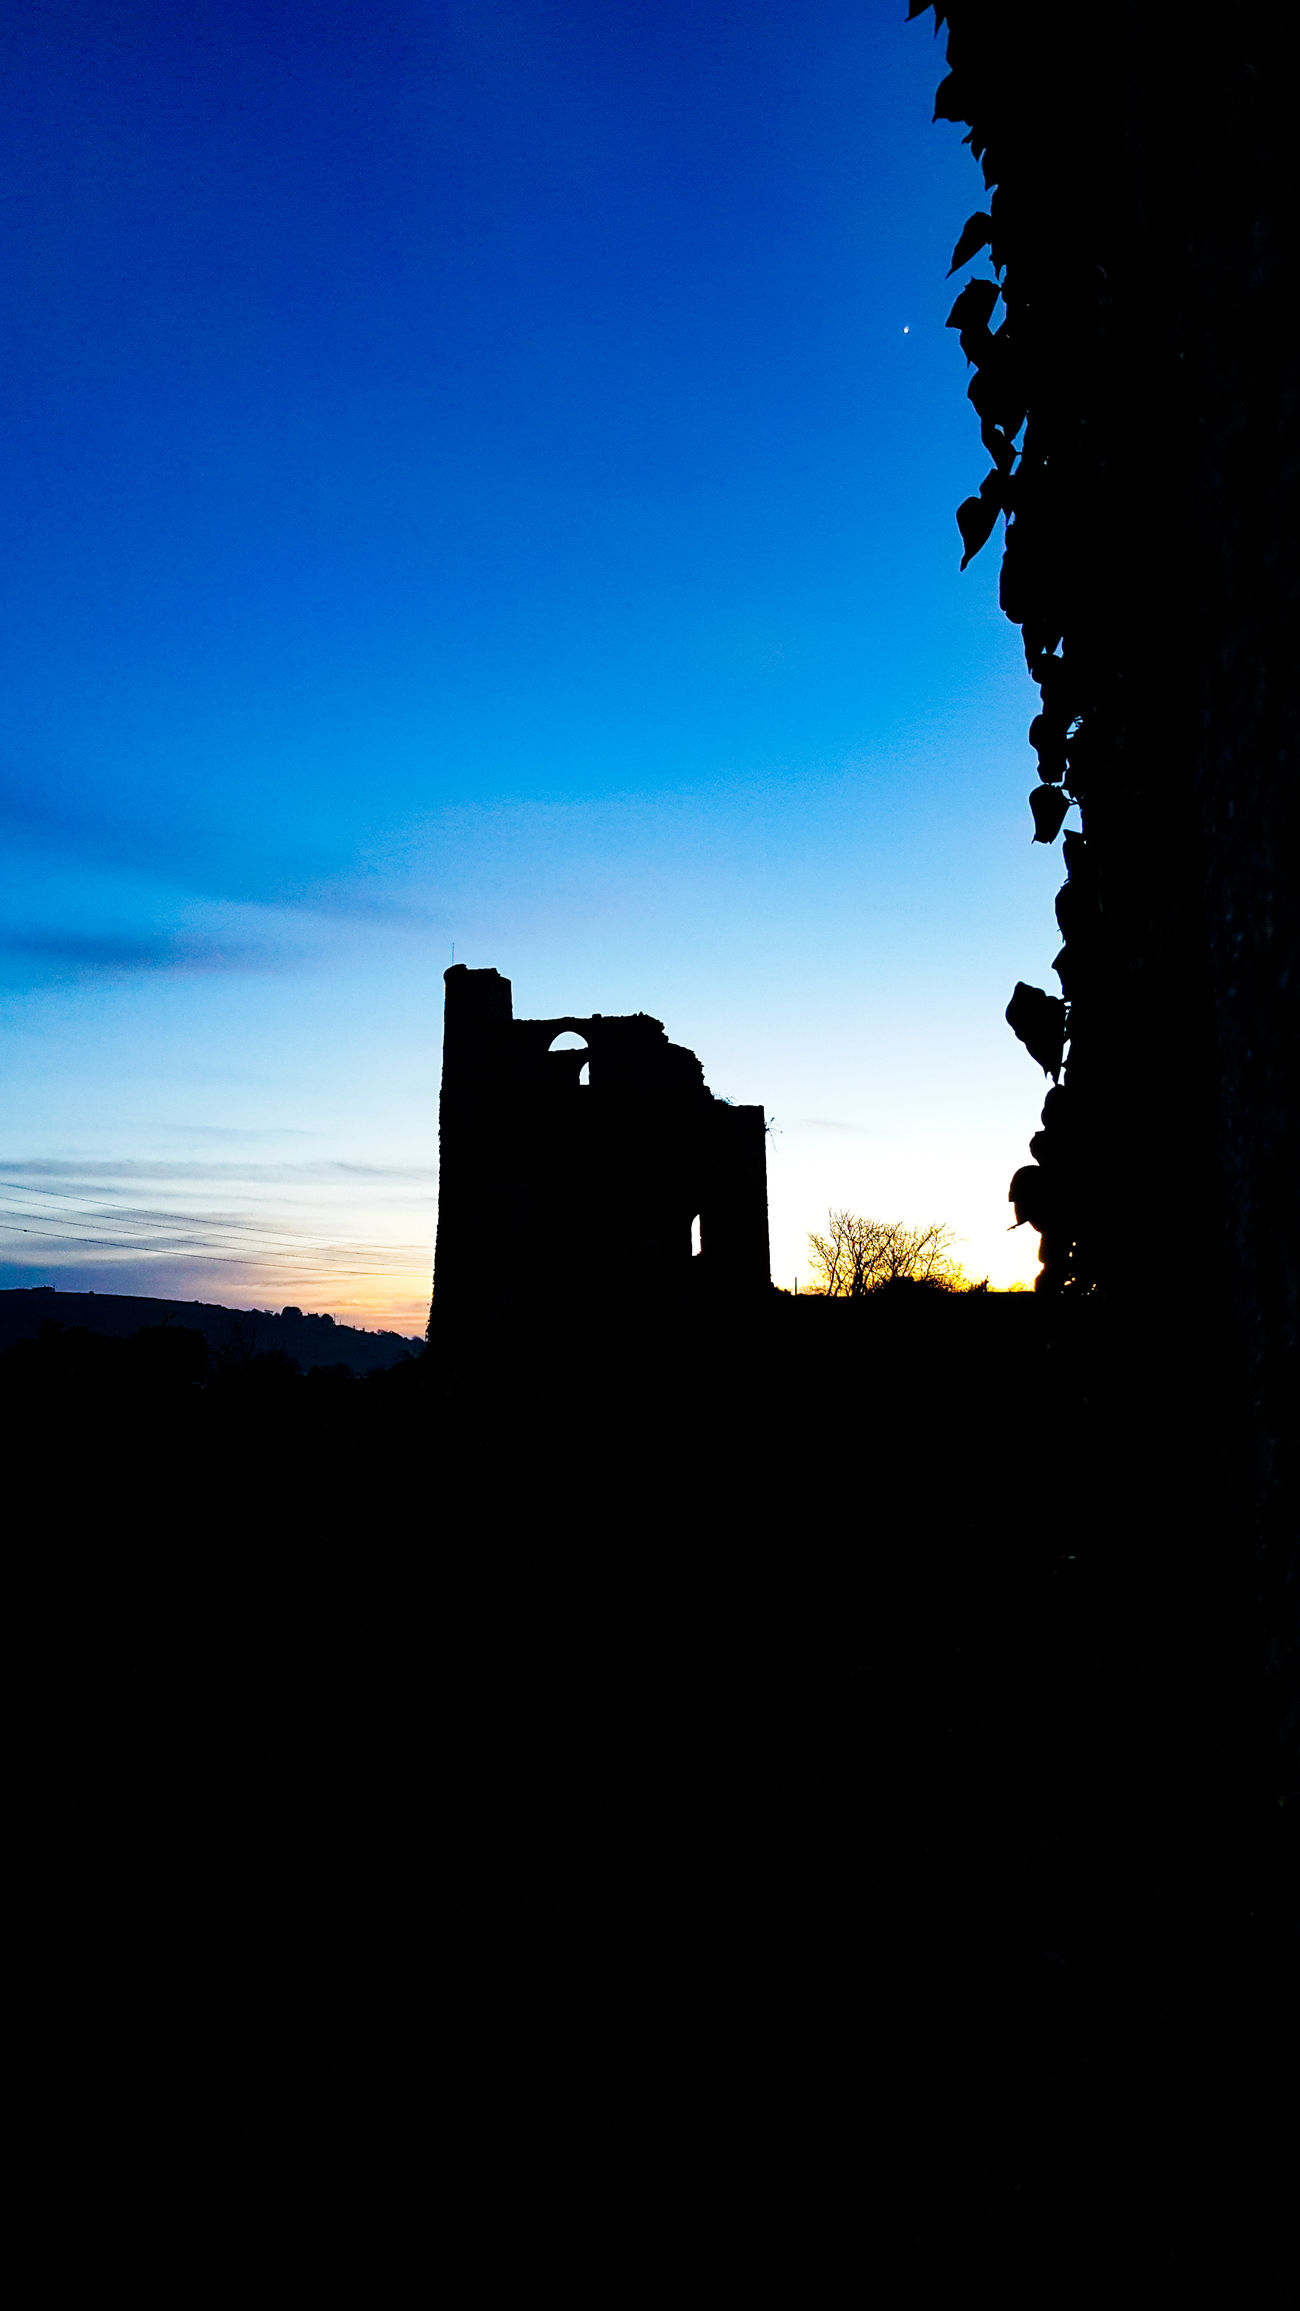 Mining country Sillouettes Silhouette Built Structure No People Sky Day Outdoors Astronomy Mining Village Mining Heritage Sunsets Sunset_collection Stone Structure Mining Site Mining Industry Sunlight Sillhouttes And Sky Silhouette_collection Sillouettes Scenics Sunset Old Ruin Silhouette Architecture History Sillouettes And Sunsets